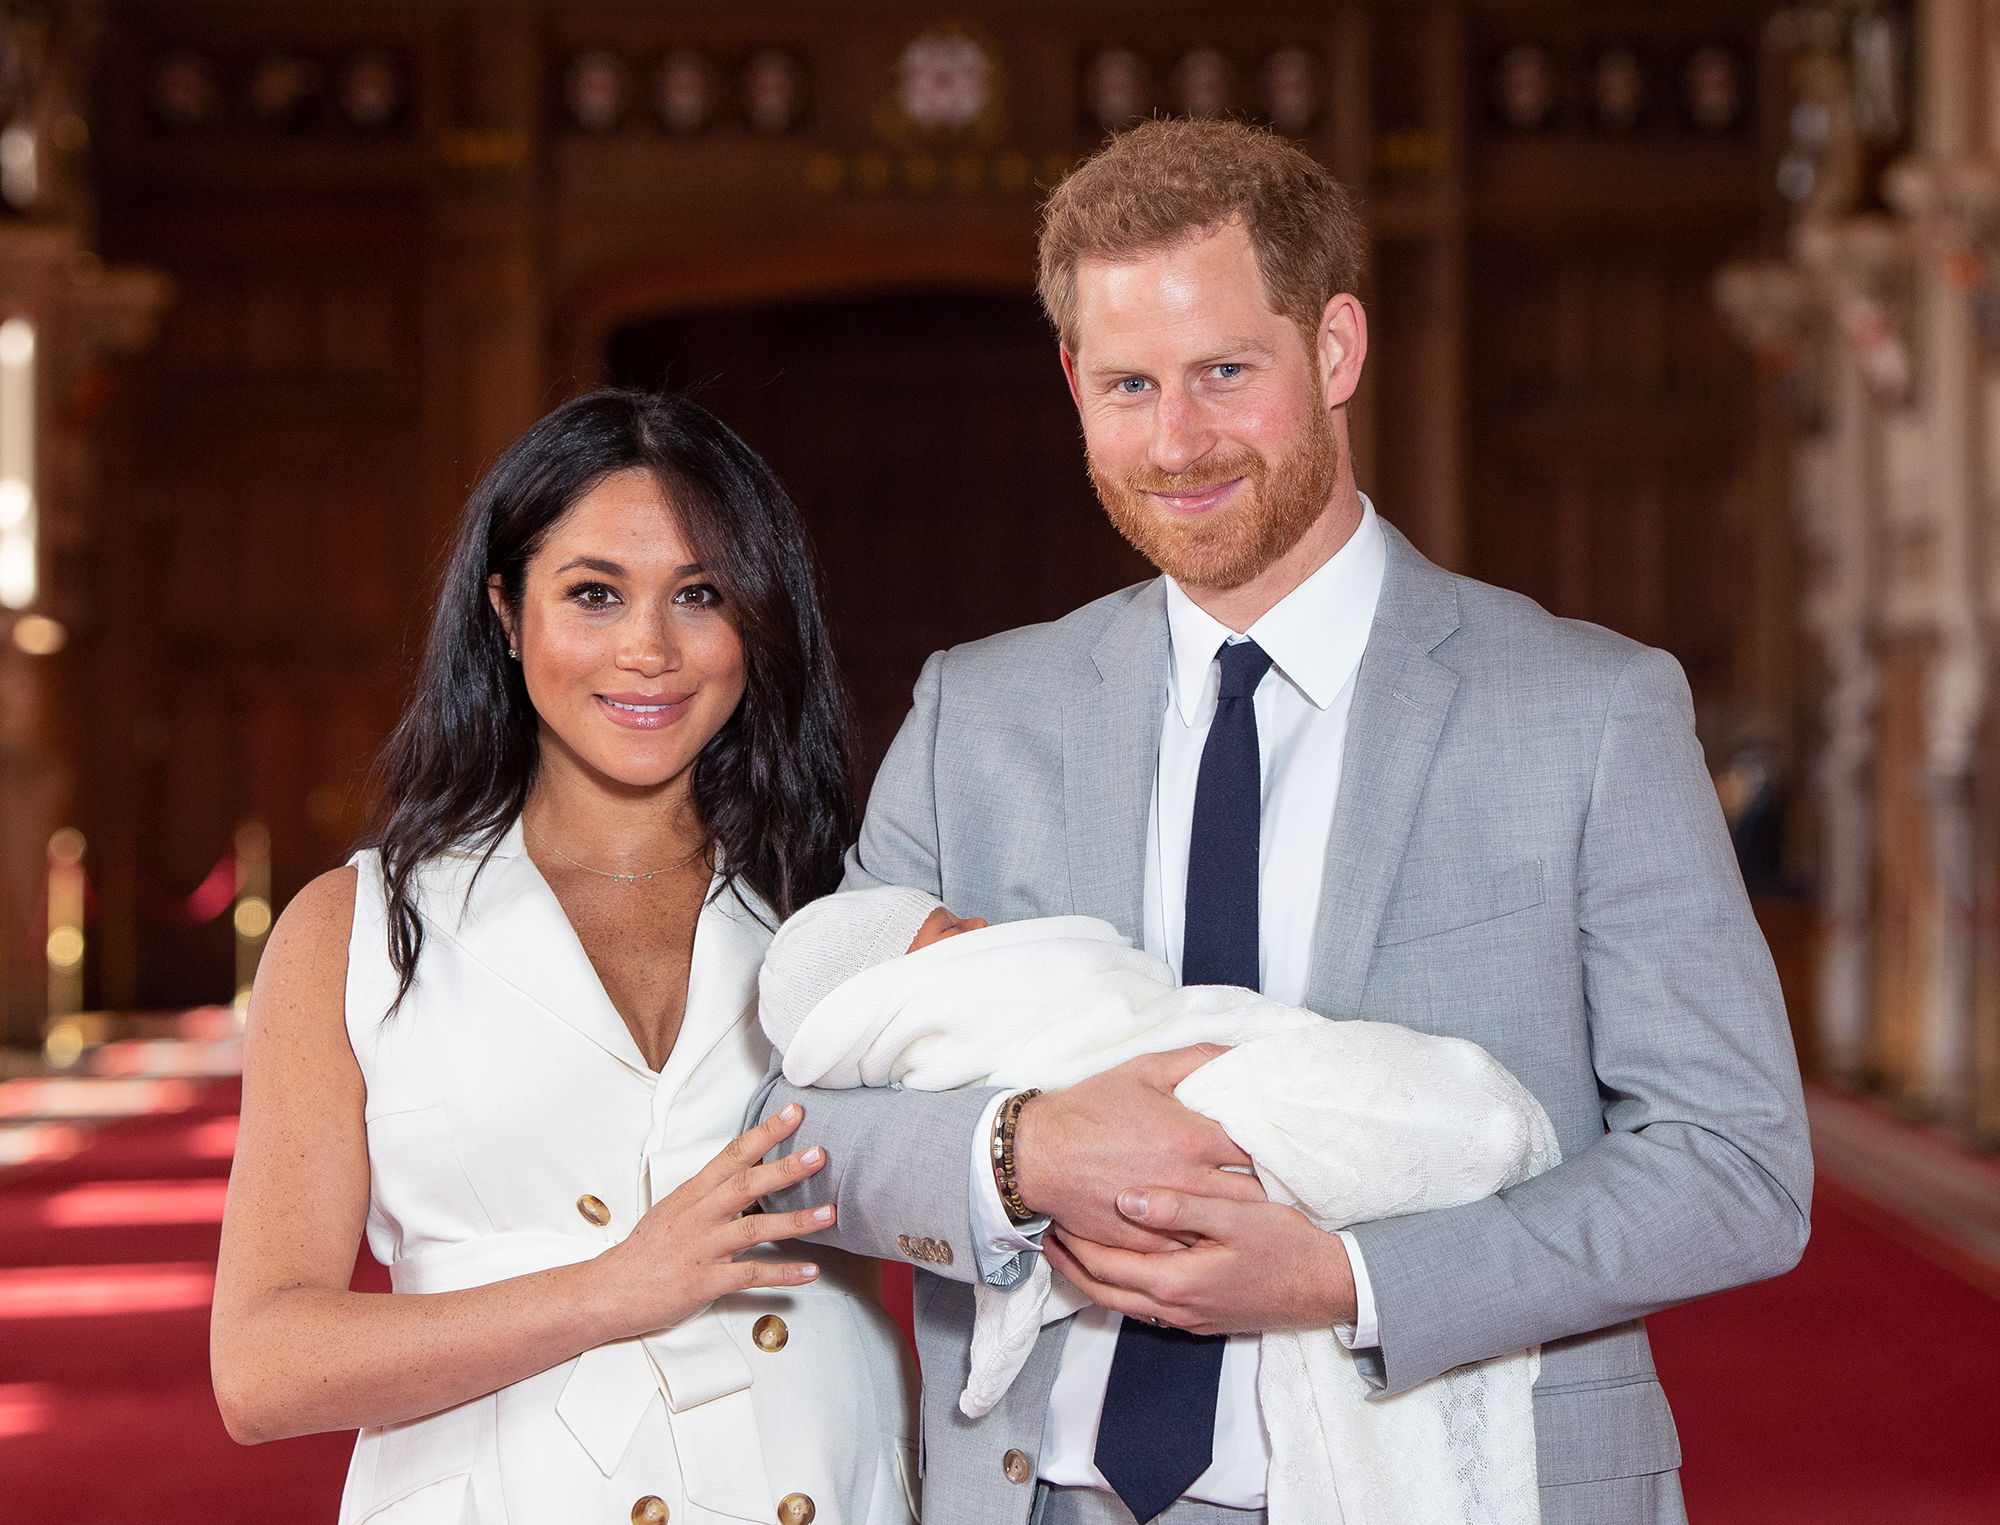 Prince Harry and Duchess Meghan's 1st Year of Marriage - Meghan gave birth at the private Portland Hospital in Westminster on May 6, 2019. Two days later, they made their first joint appearance as parents and announced their son's name: Archie Harrison Mountbatten-Windsor!